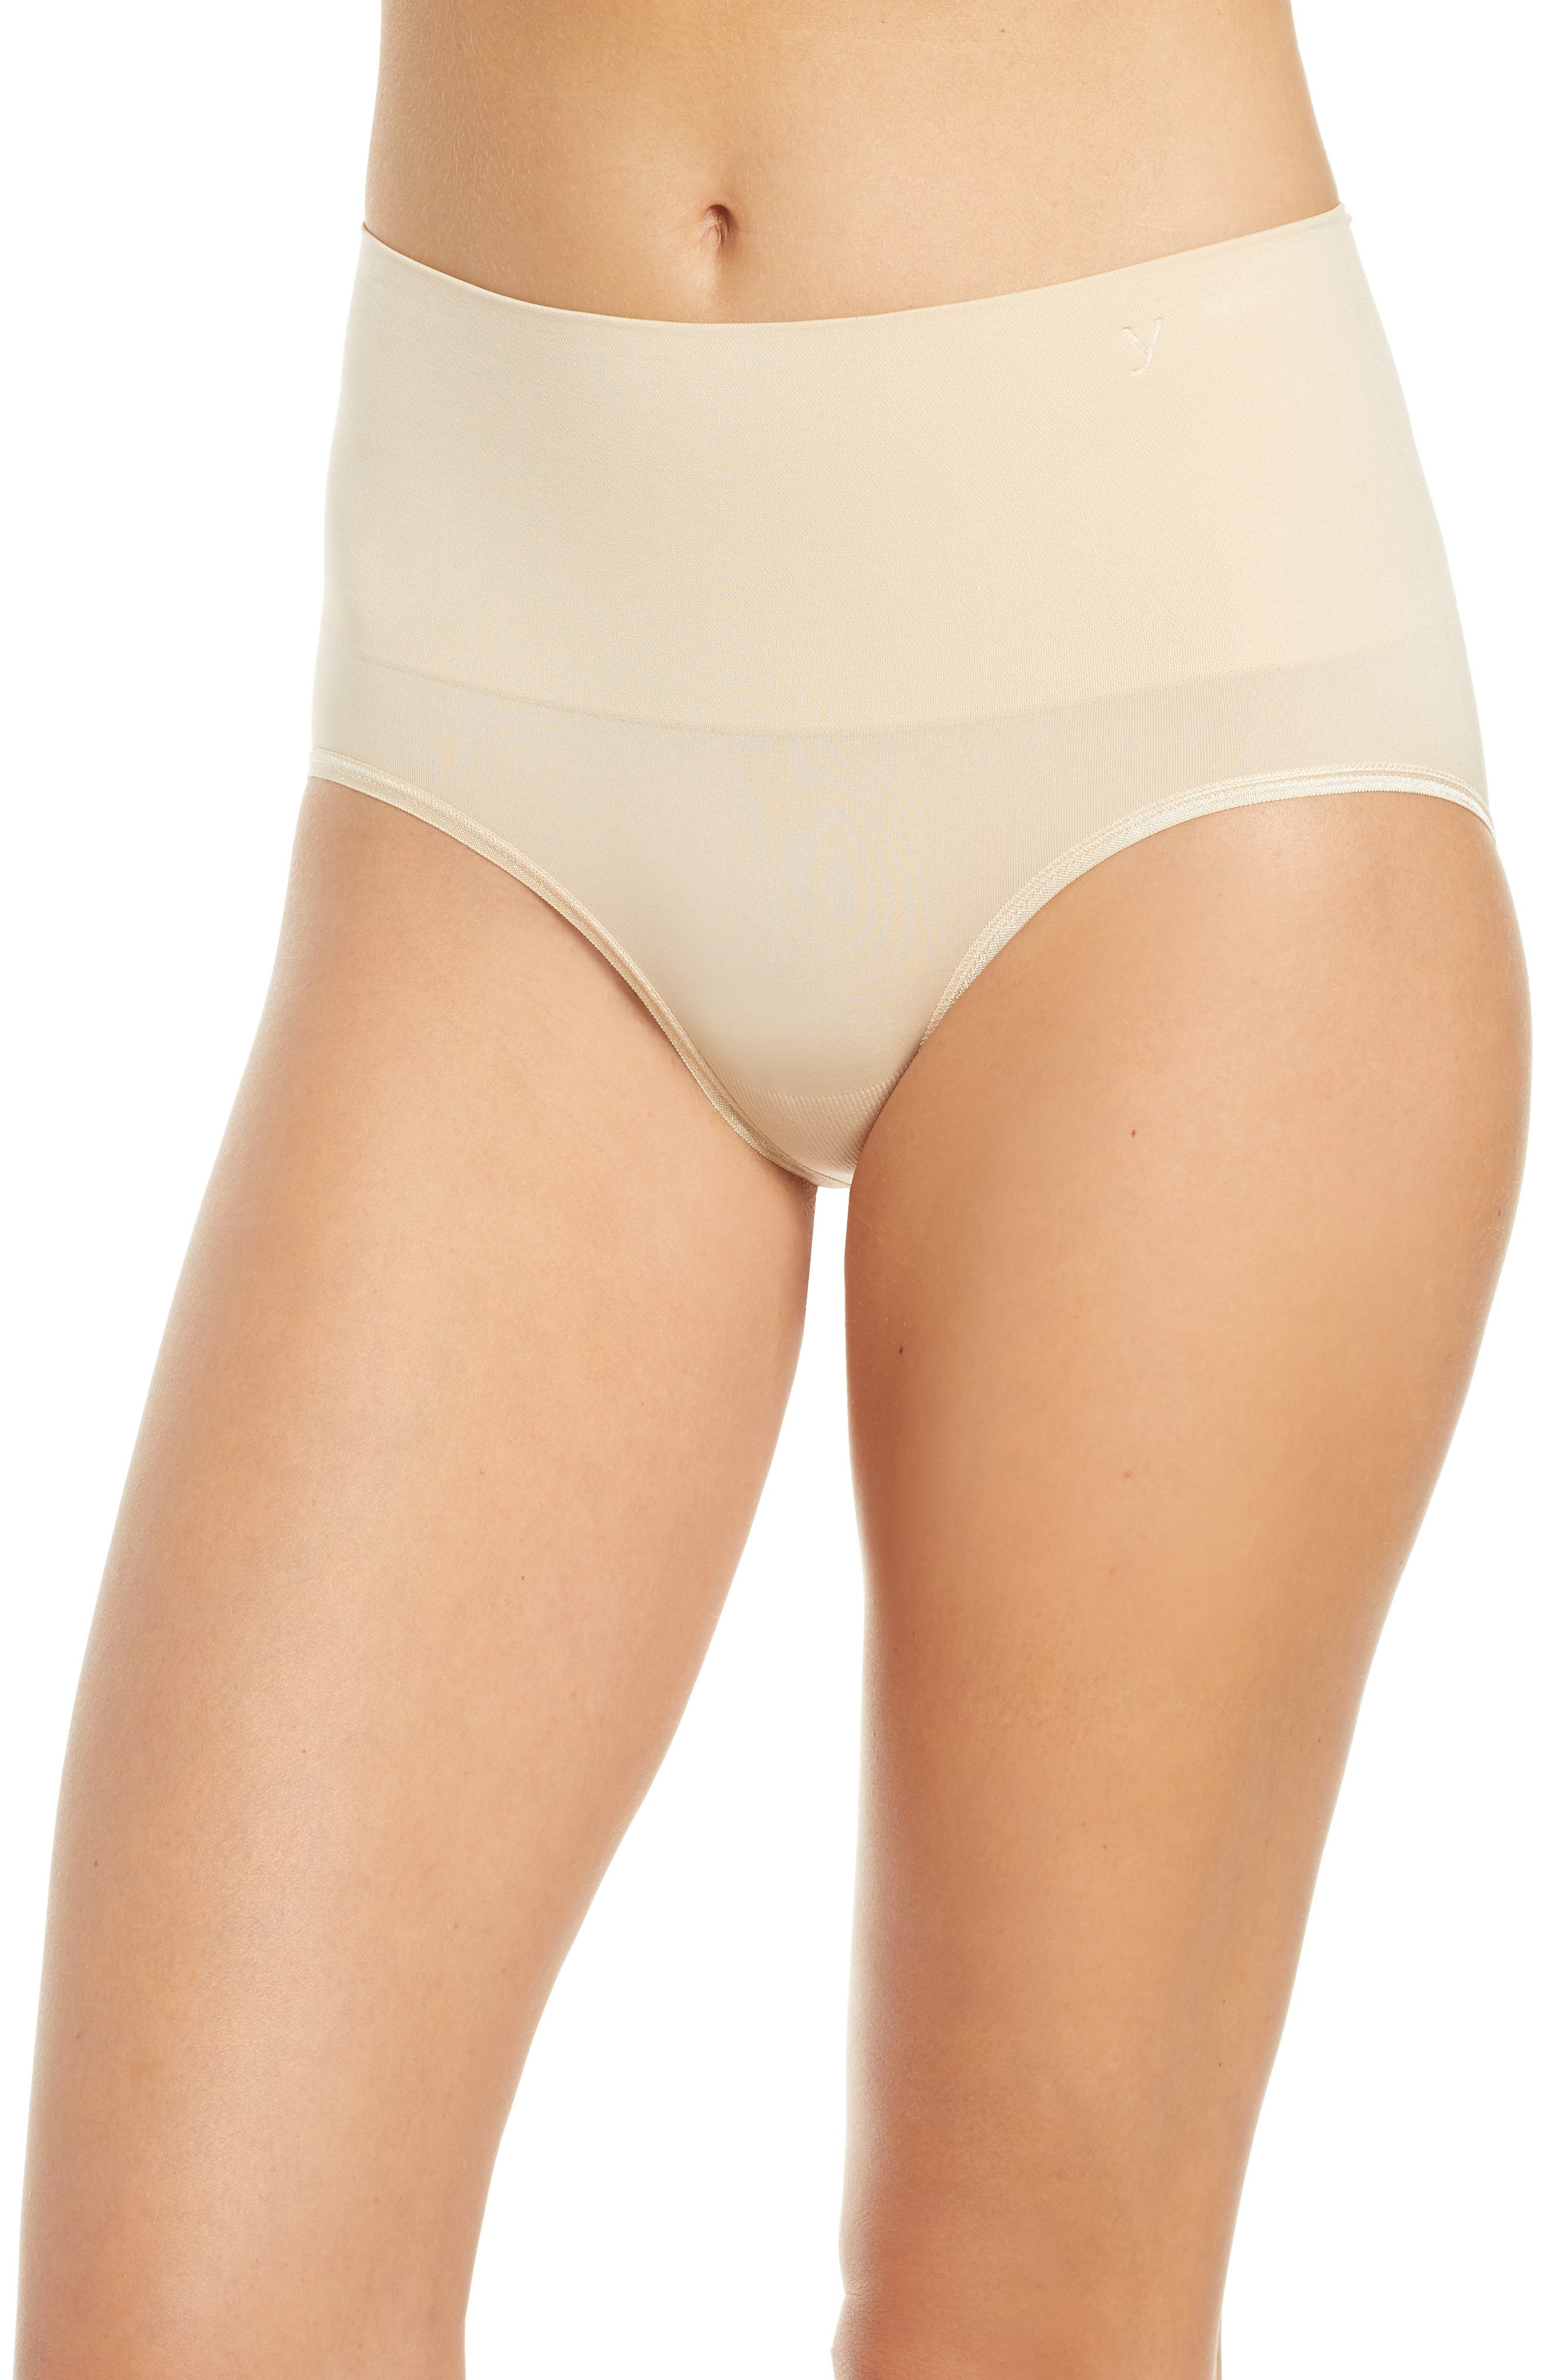 Yummie Ultralight Seamless Shaping Briefs (Any 2 for $30)